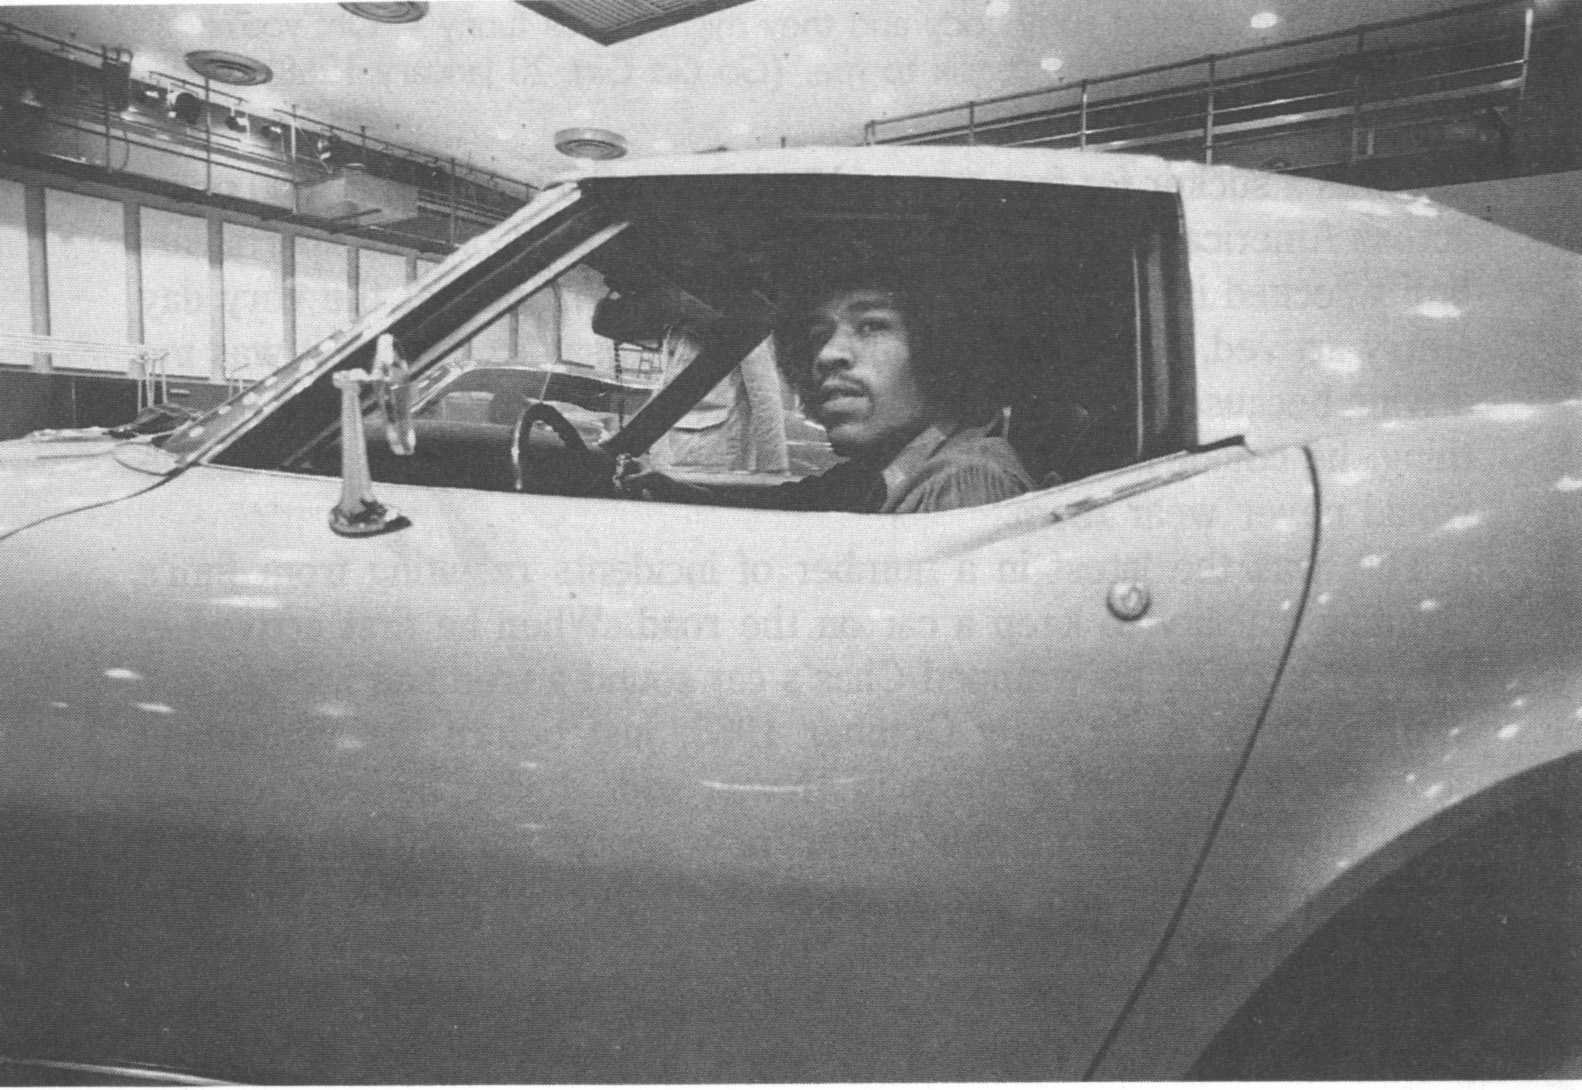 Lost Star Cars The Jimi Hendrix Corvettes Slight Reprise 1960 Pontiac Catalina Wiring Diagrams In A Corvette This Would Be His Replacement Ride Not First Car